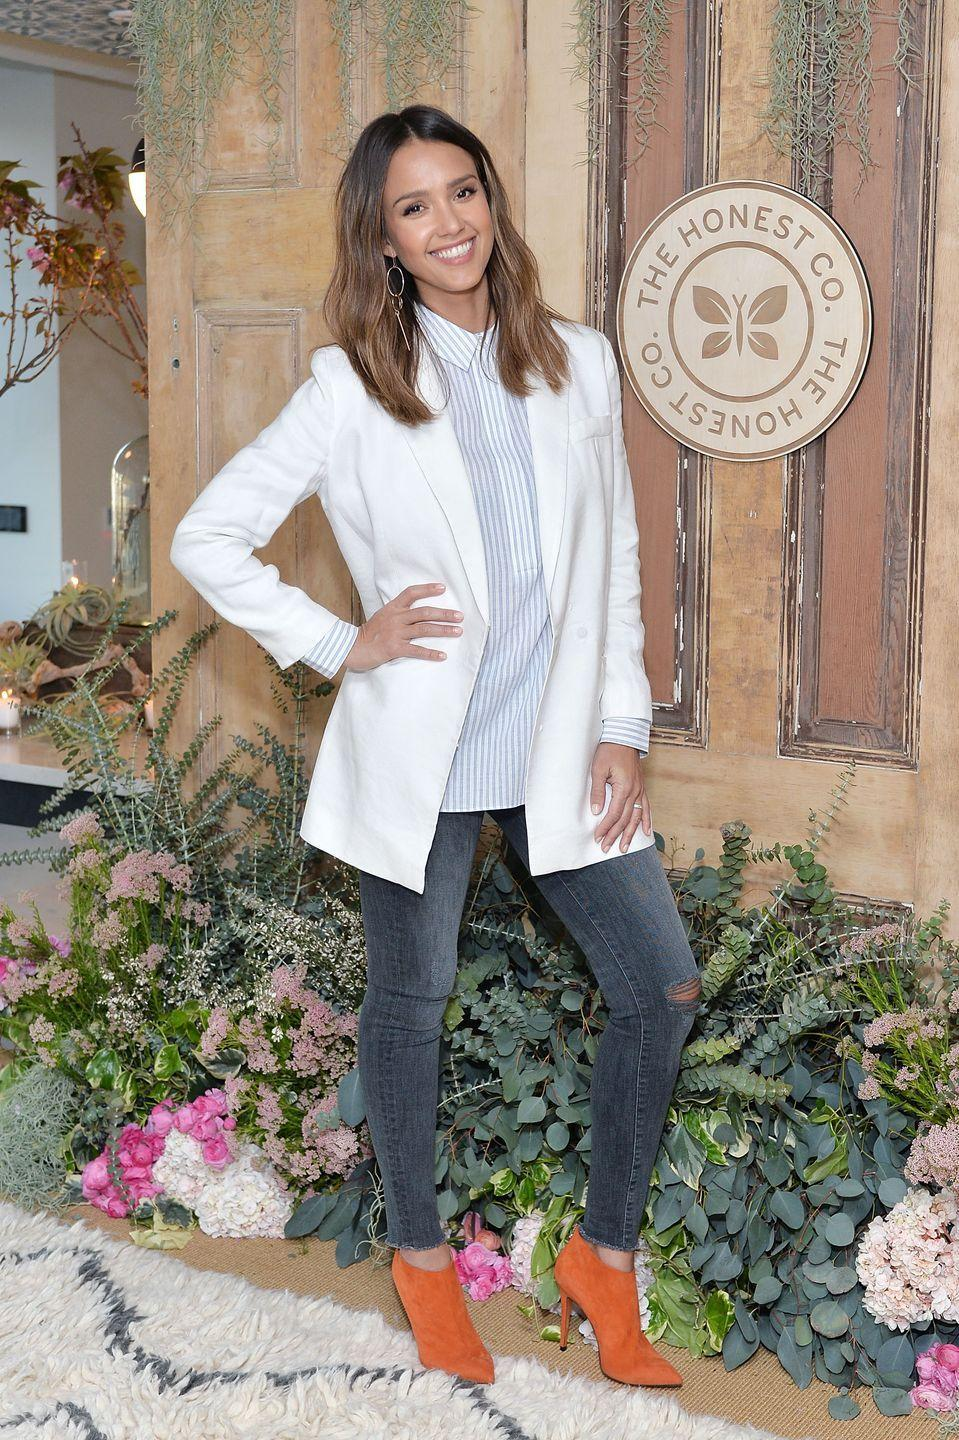 "<p>Although Alba still occasionally acts when she finds the right roles, her main gig these days is the billion dollar company she founded, The Honest Company. Alba started the <a href=""https://www.forbes.com/profile/jessica-alba/#ec066e6159ea"" rel=""nofollow noopener"" target=""_blank"" data-ylk=""slk:non-toxic household product company"" class=""link rapid-noclick-resp"">non-toxic household product company</a> in 2011 and it has since become a household name in the industry.</p>"